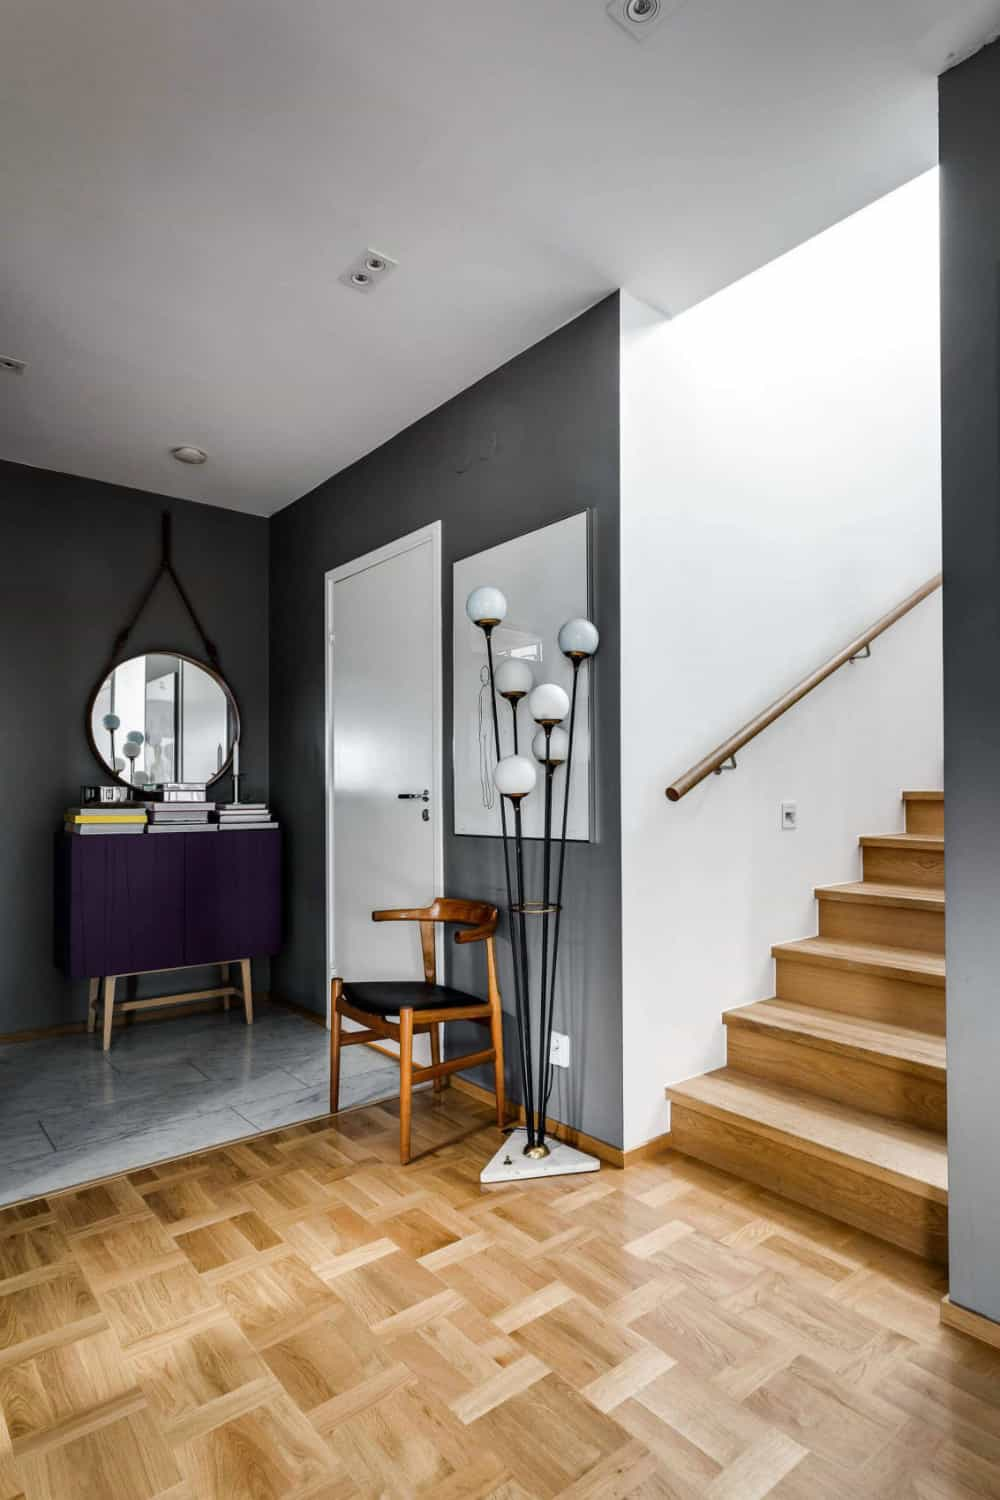 Immediately flooring changes from stone tiles to parquet